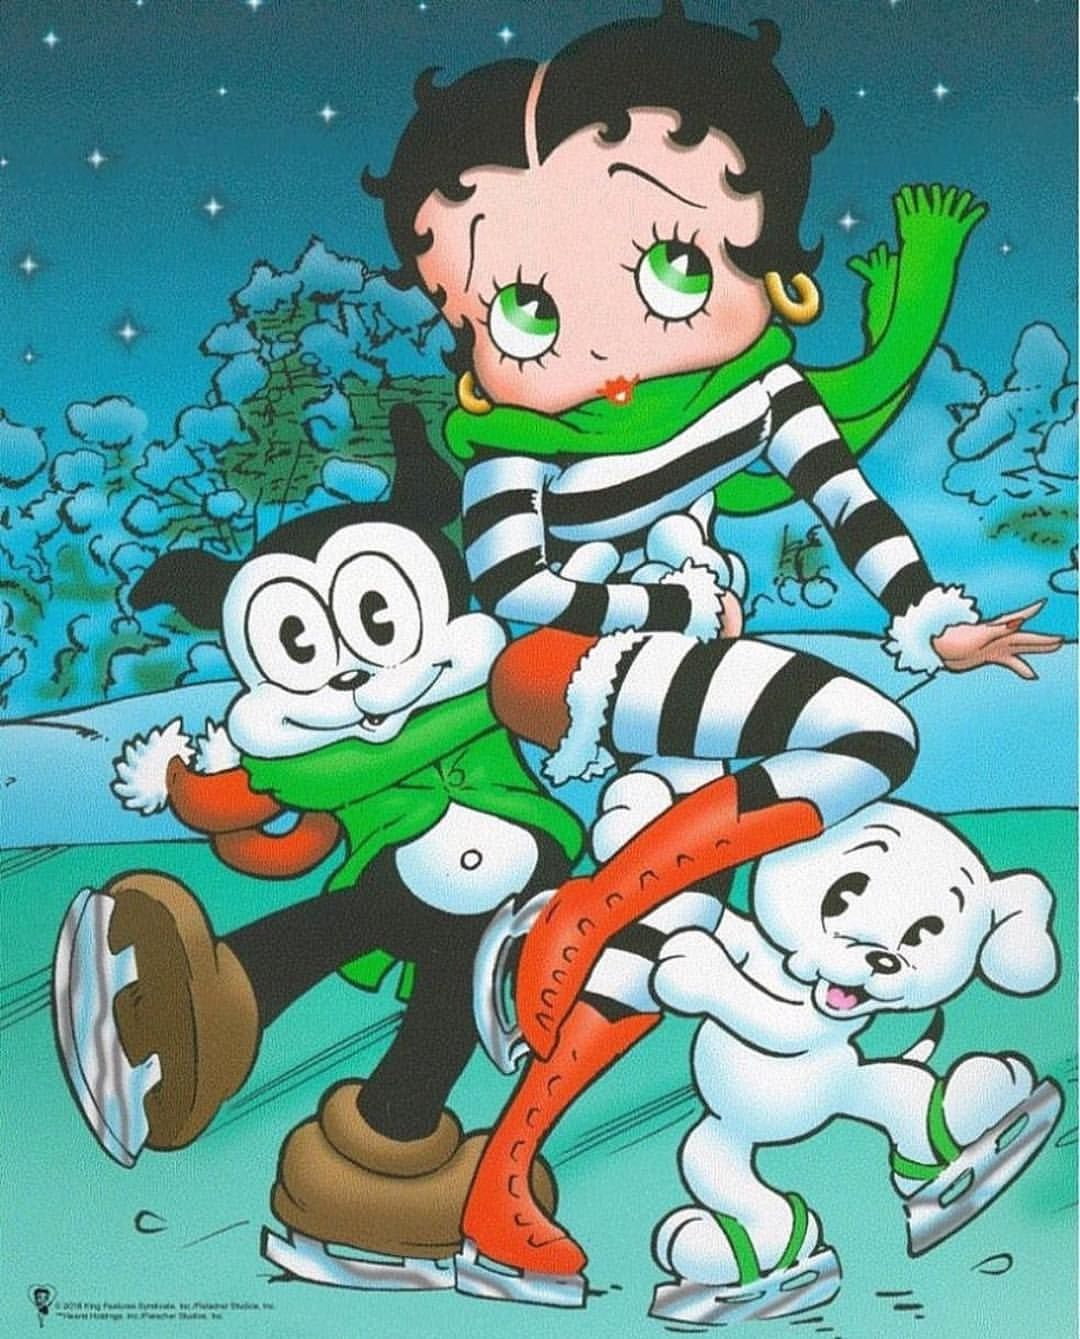 Hope you're having some fun today! 😀☃️ #booplove #boxingday #fun #holidays2016 #bettyboop